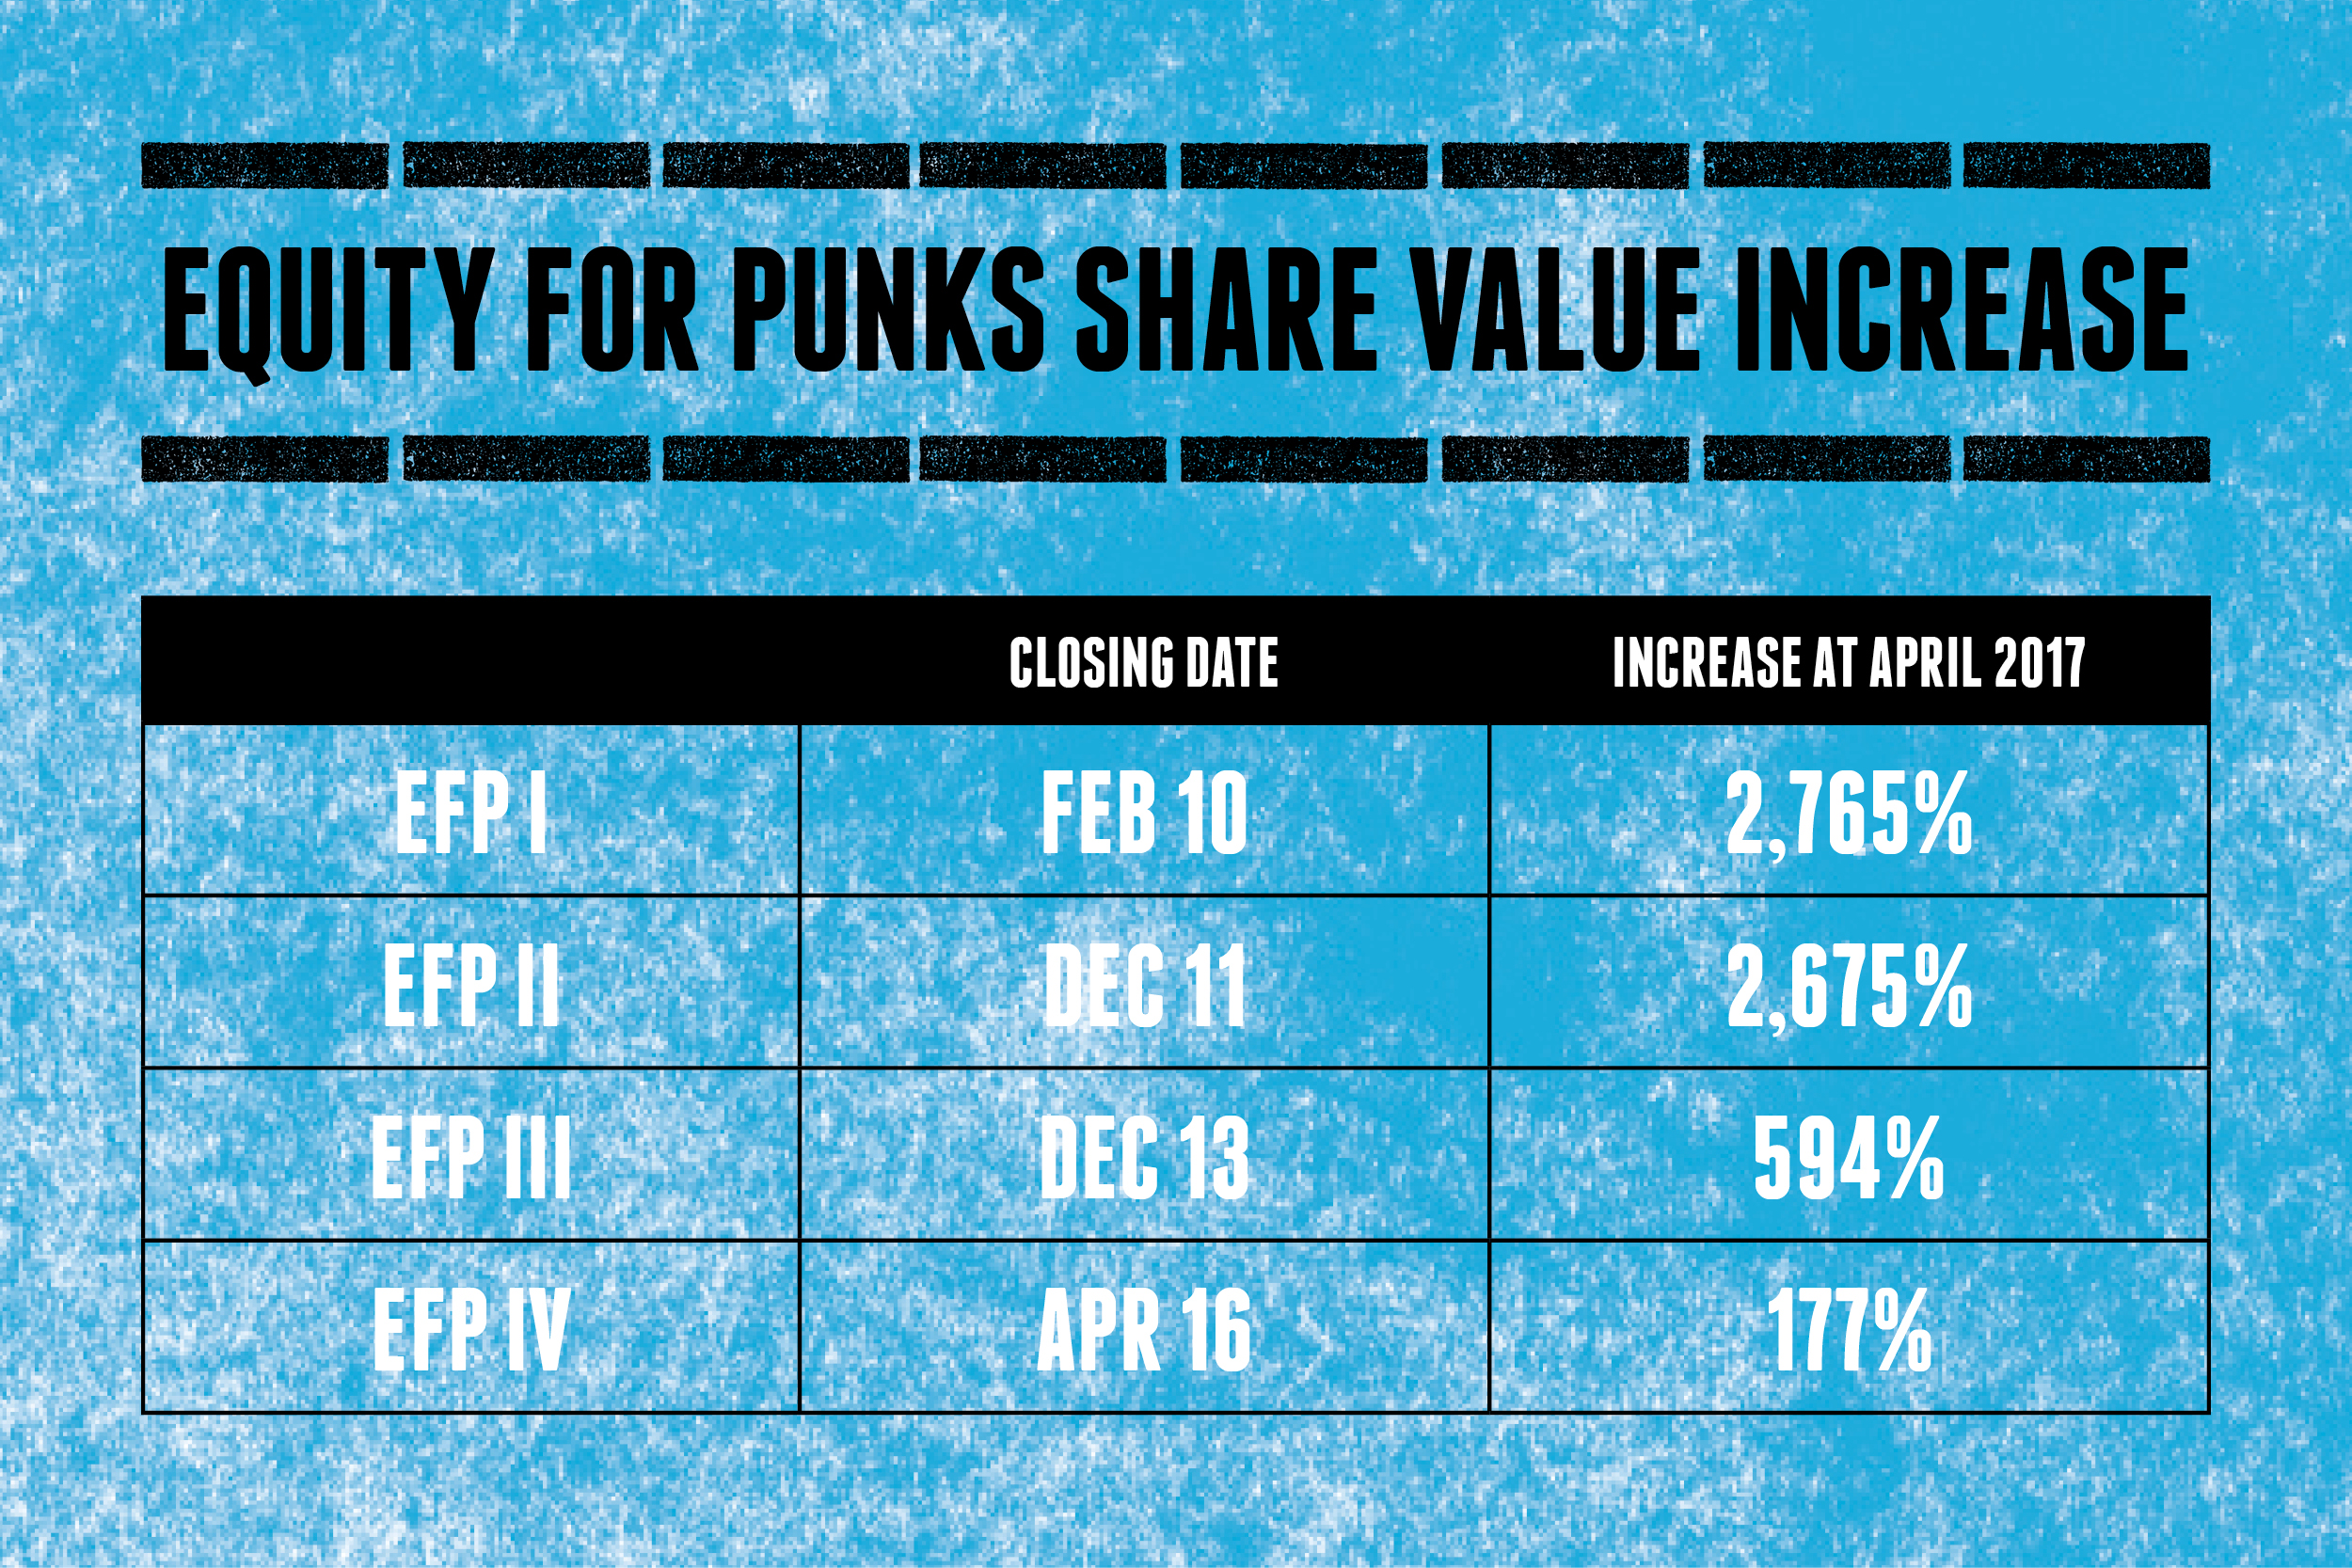 tabla indicativa del incremento del equity punk